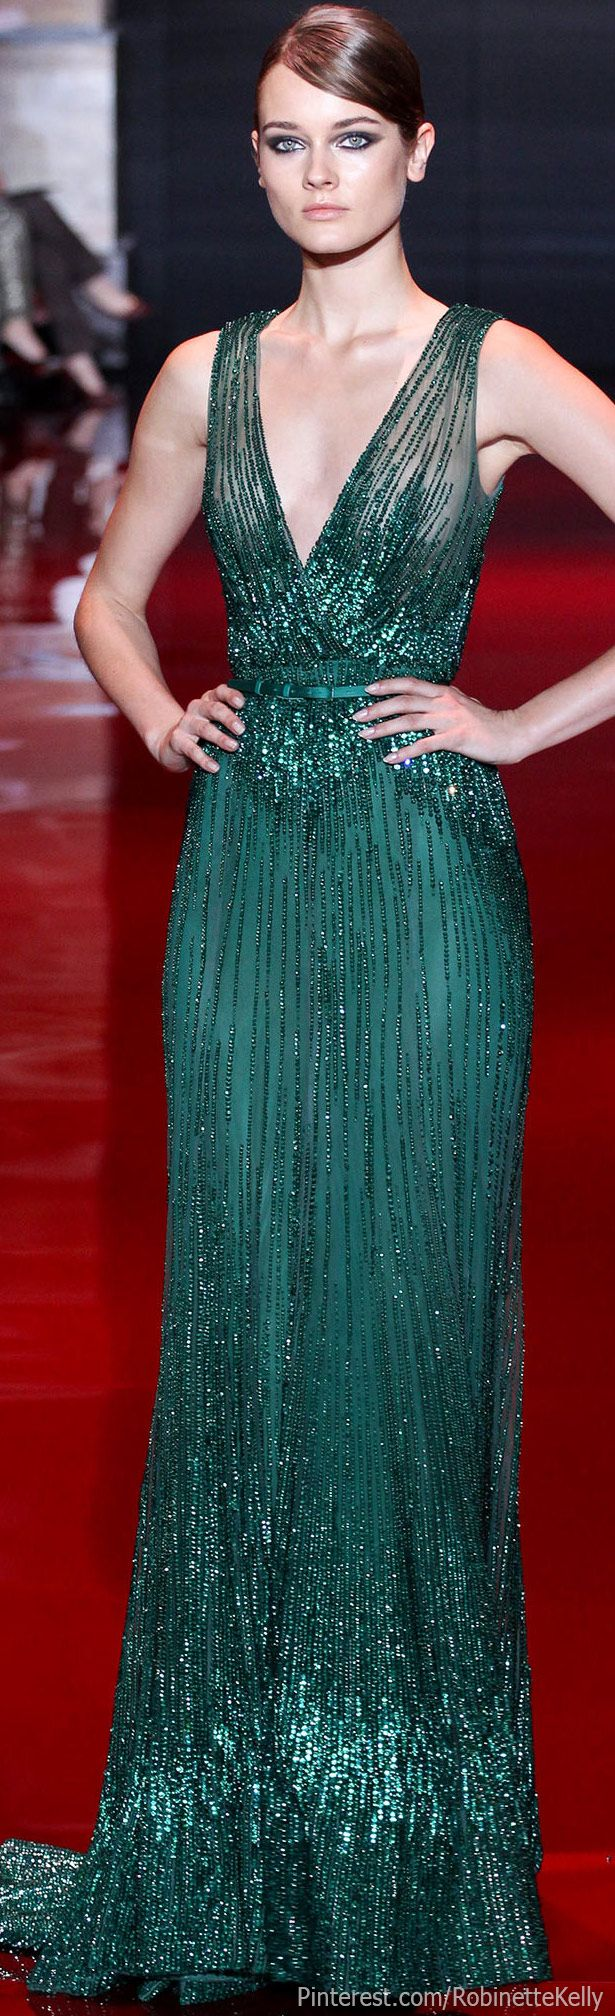 Elie Saab Haute Couture | #beaded #gown #dress | This green evening gown can be made for you by www.DariusCordell.com